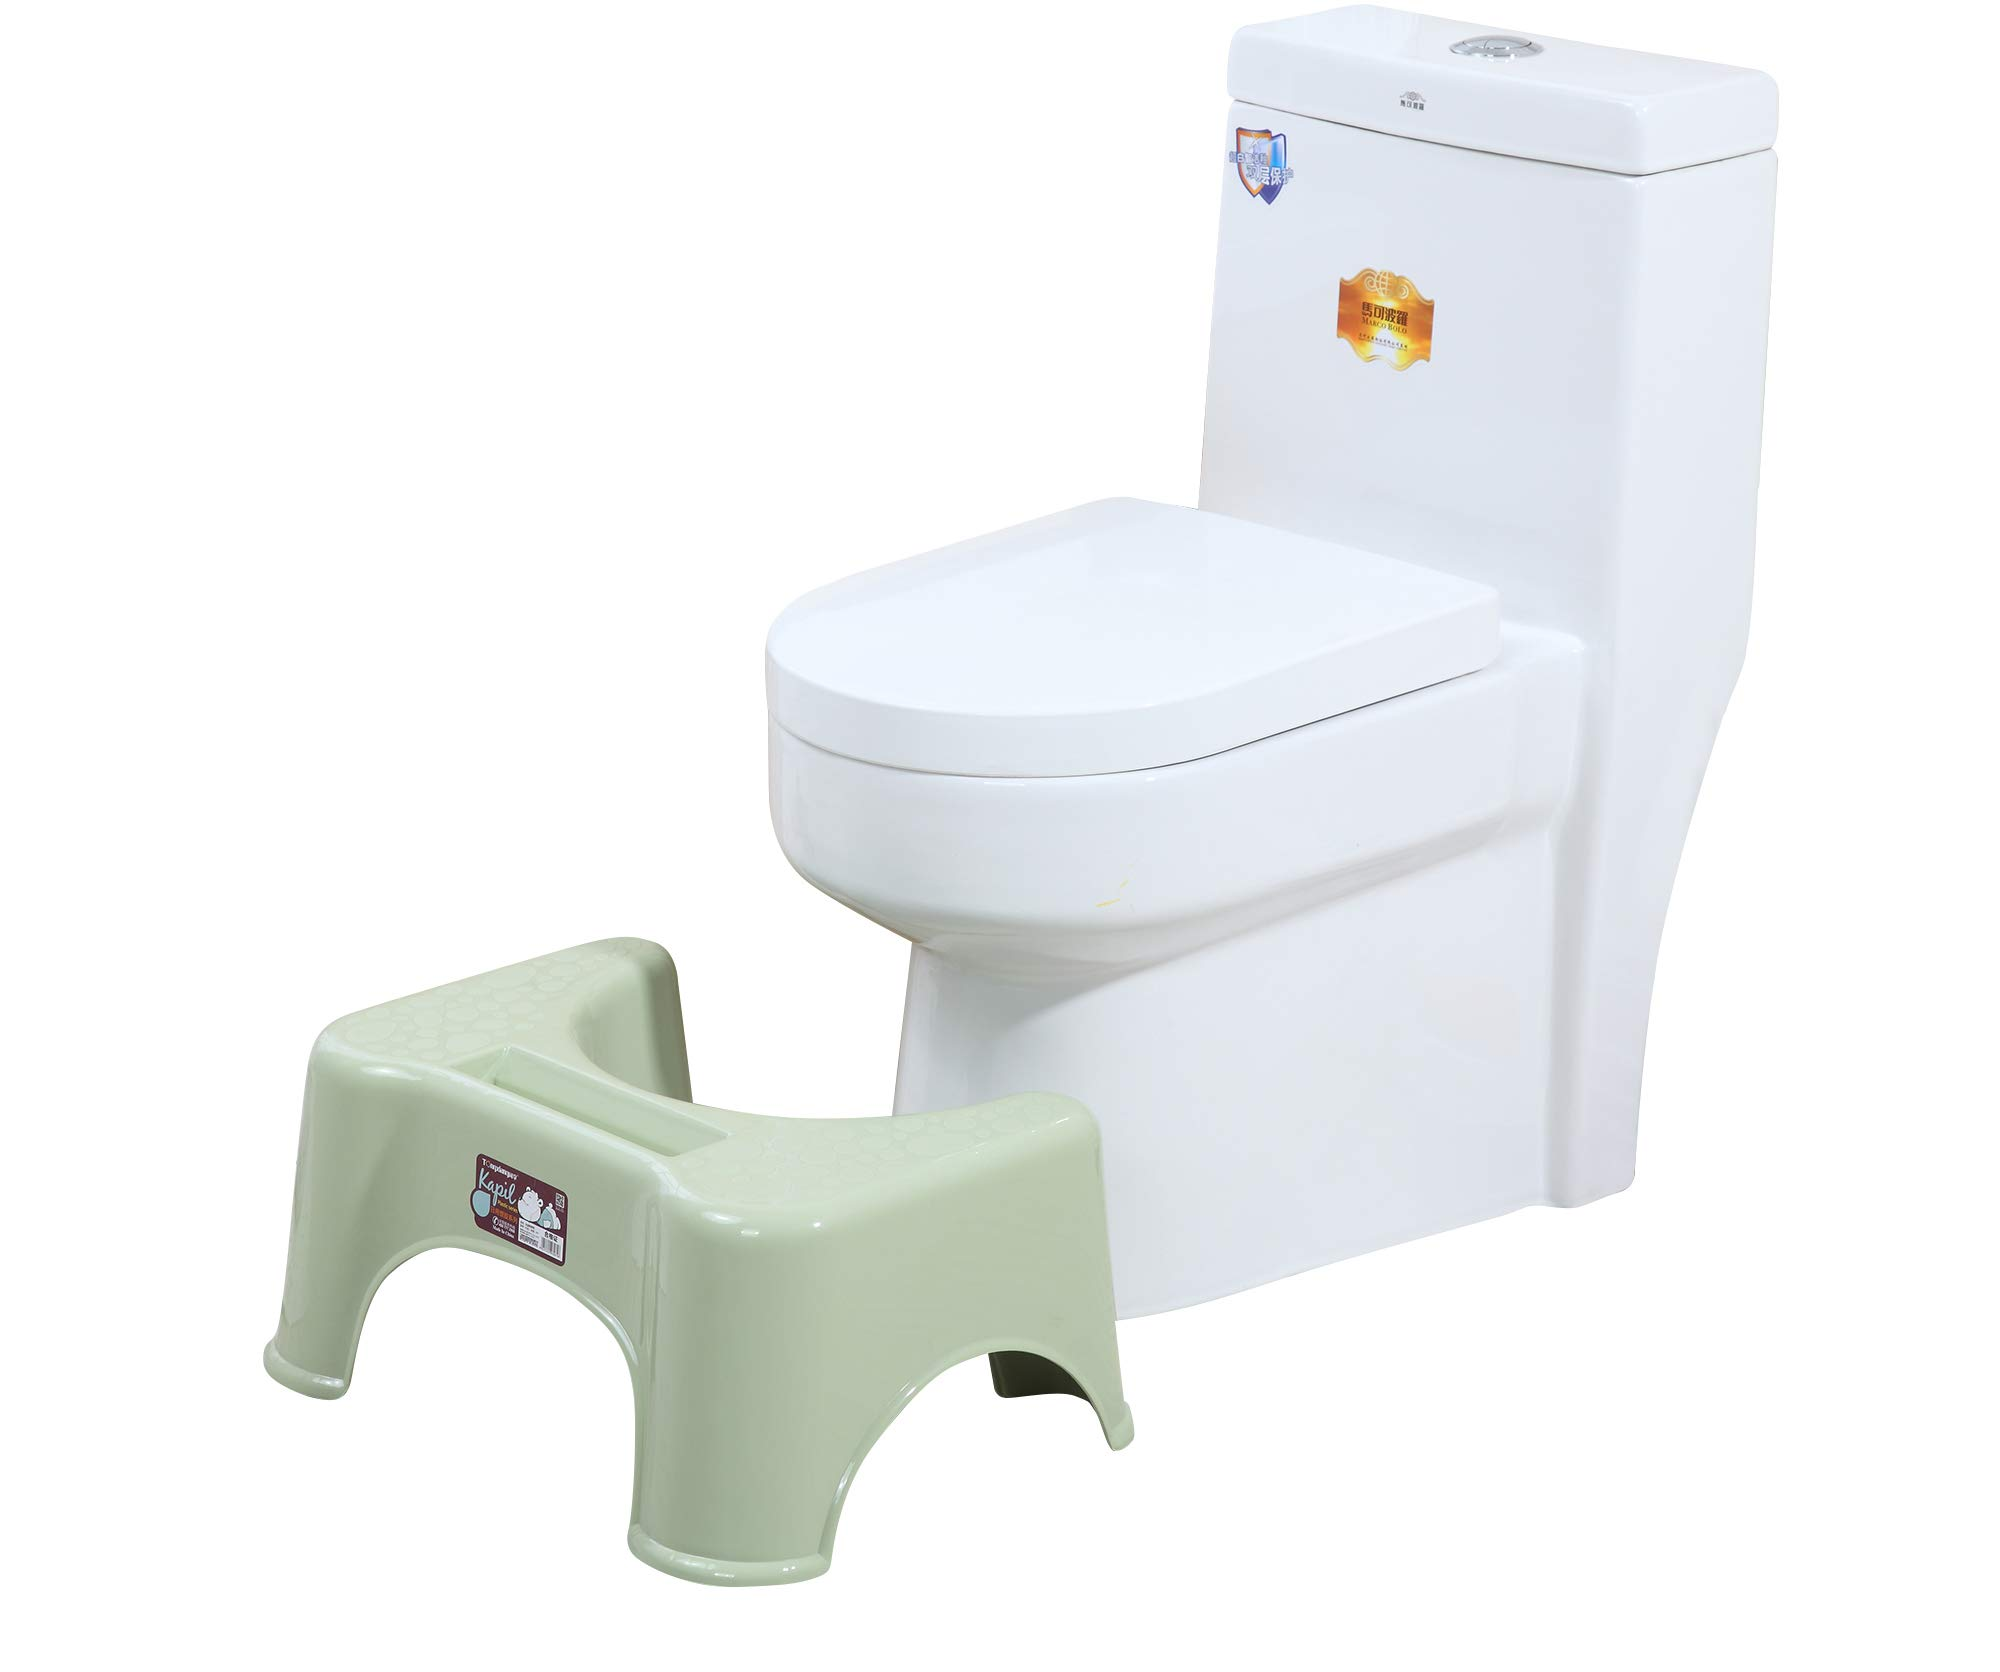 Toilet Stool for Bathroom - Space Save Durable Non-Slip Potty Stool for Elderly Kids Pregnant Women Height 8.5 Inch Green by WANY